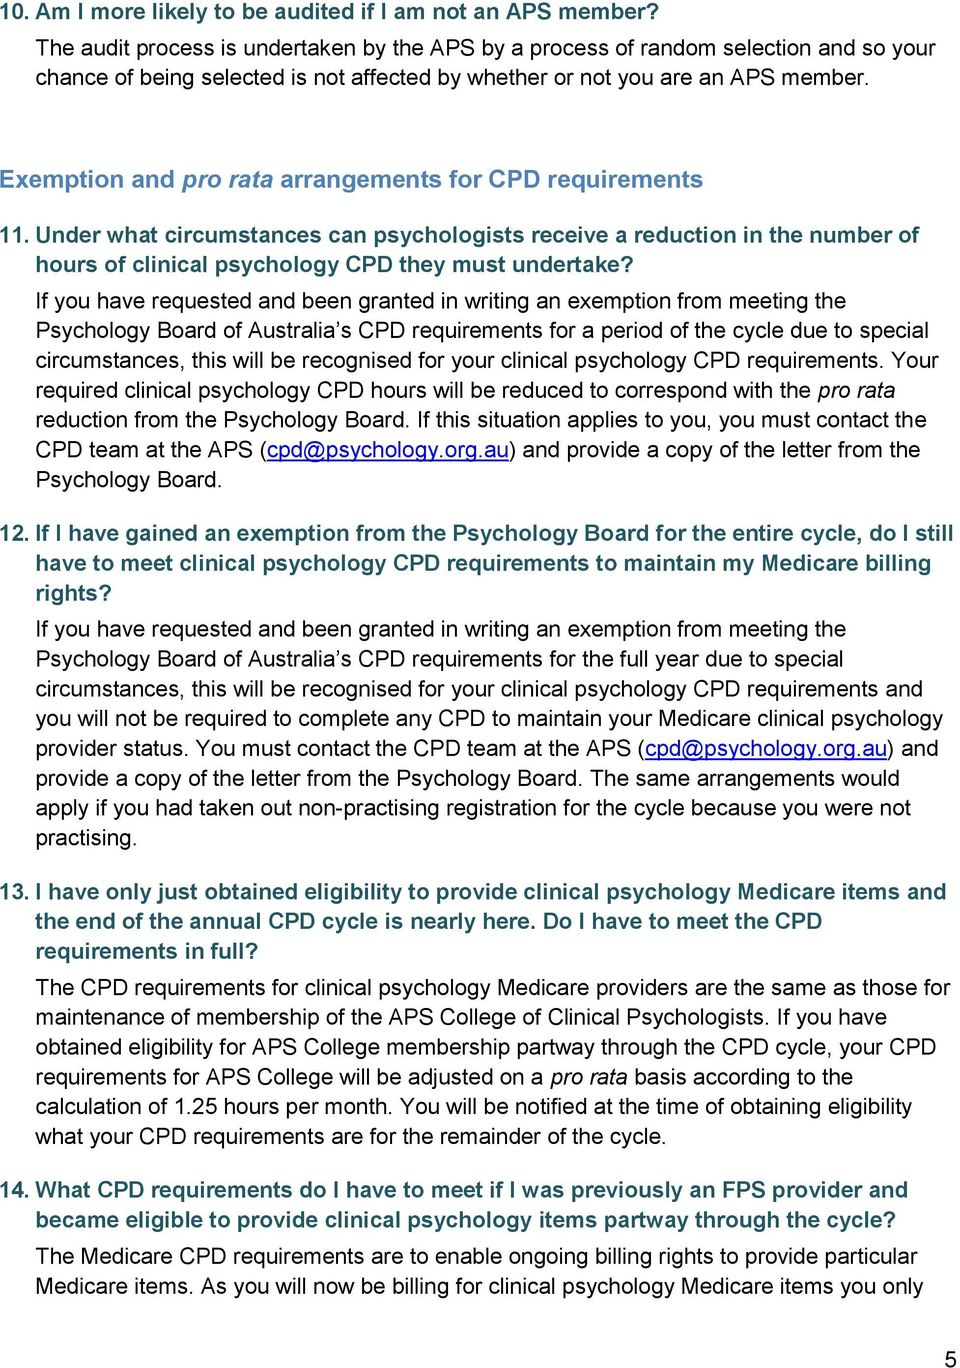 Exemption and pro rata arrangements for CPD requirements 11. Under what circumstances can psychologists receive a reduction in the number of hours of clinical psychology CPD they must undertake?